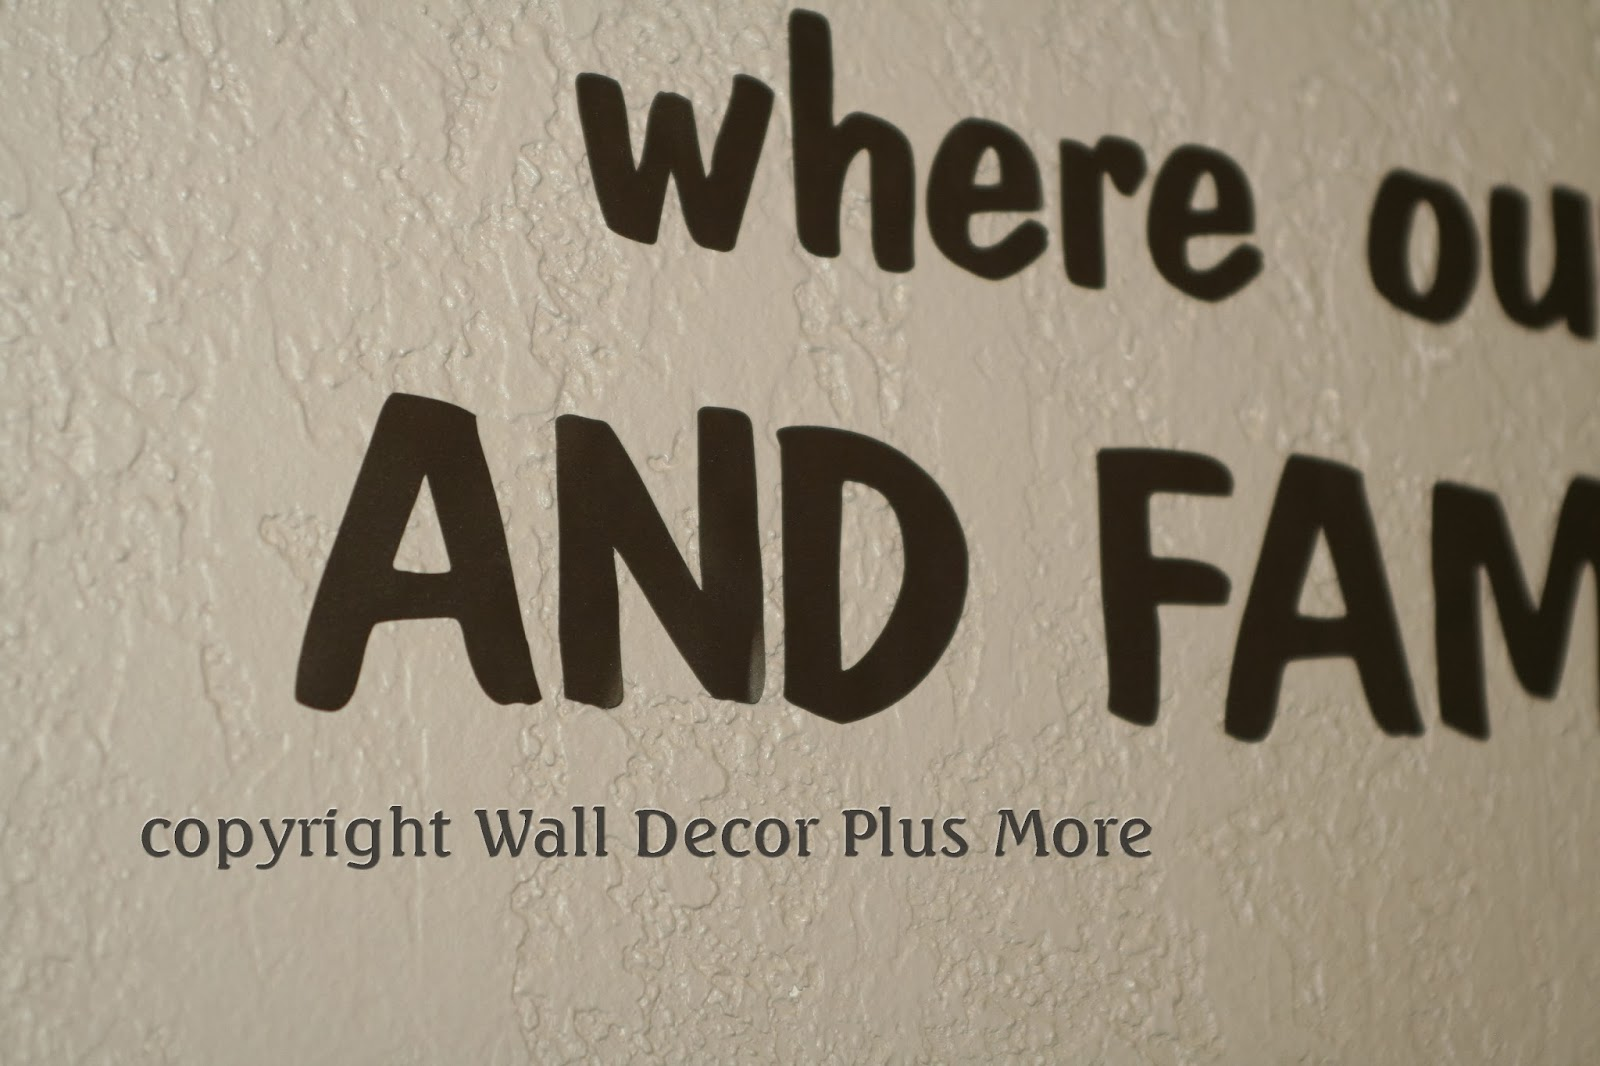 Wall Decals Textured Walls Color The Walls Of Your House - Vinyl decals for textured walls